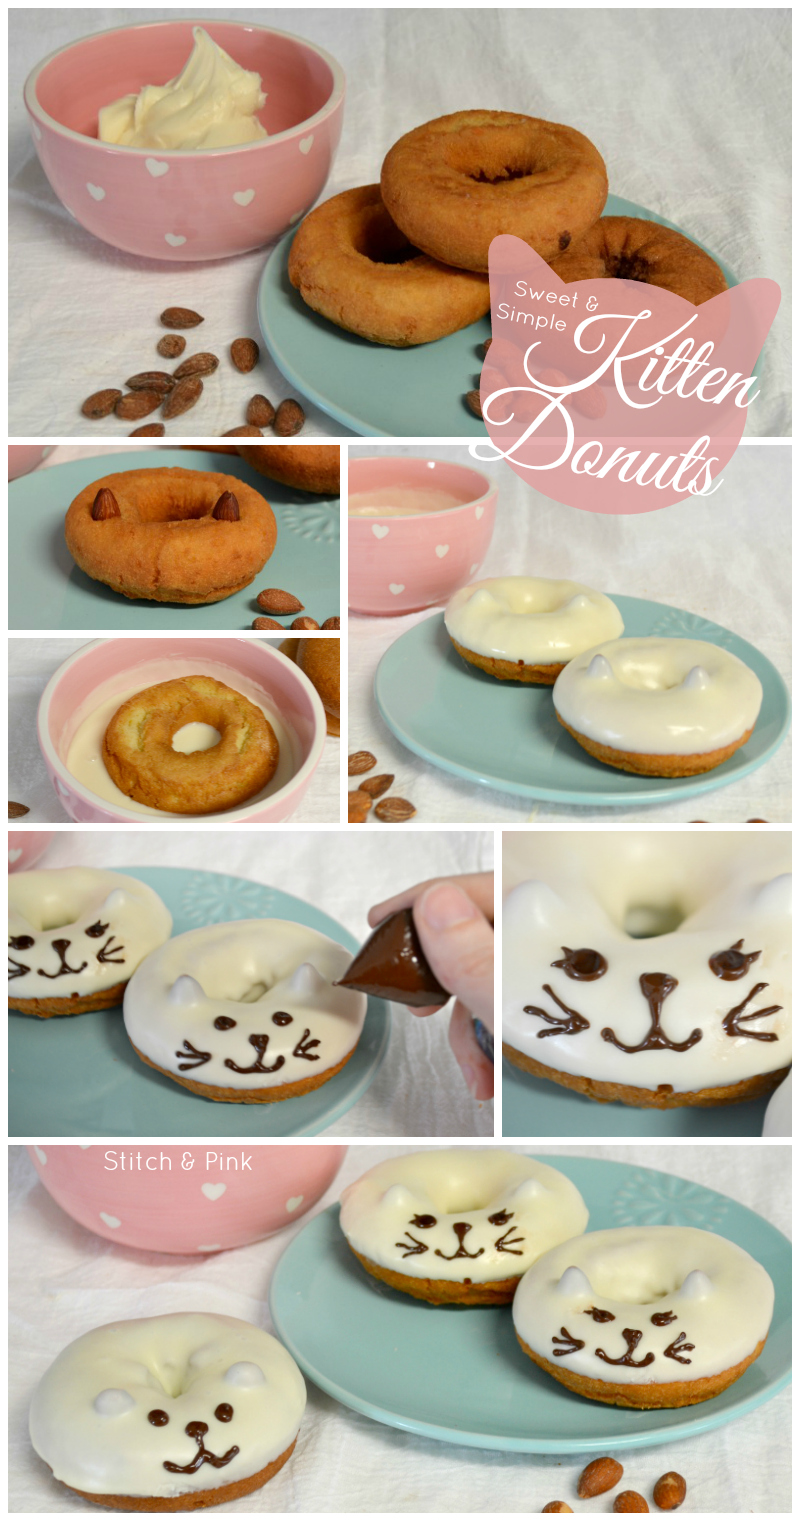 Sweet & Simple Kitten Donuts from Stitch & Pink